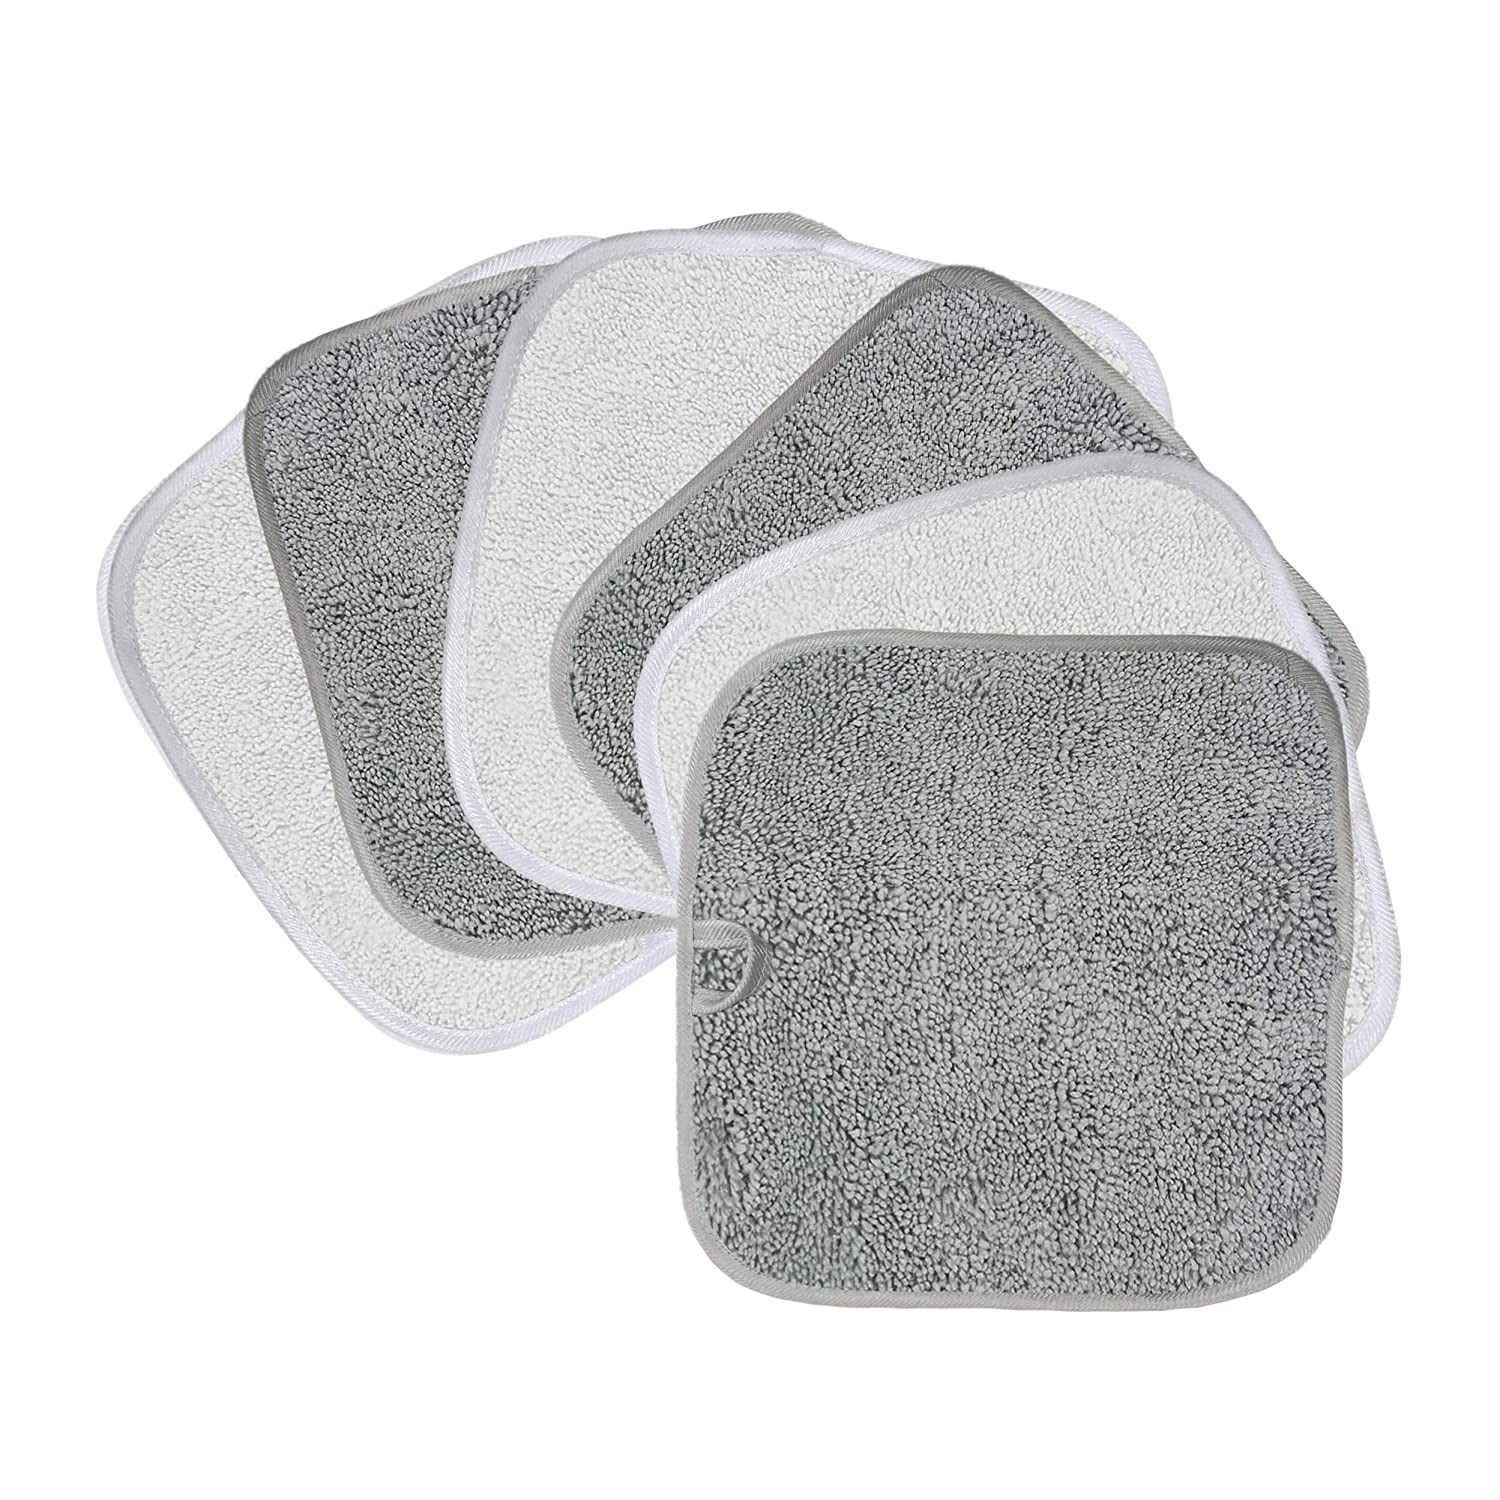 Polyte Premium Hypoallergenic Chemical Free Microfiber Makeup Remover and Facial Cleansing Cloth 8 x 8 in, 6 Pack (Gray,White)